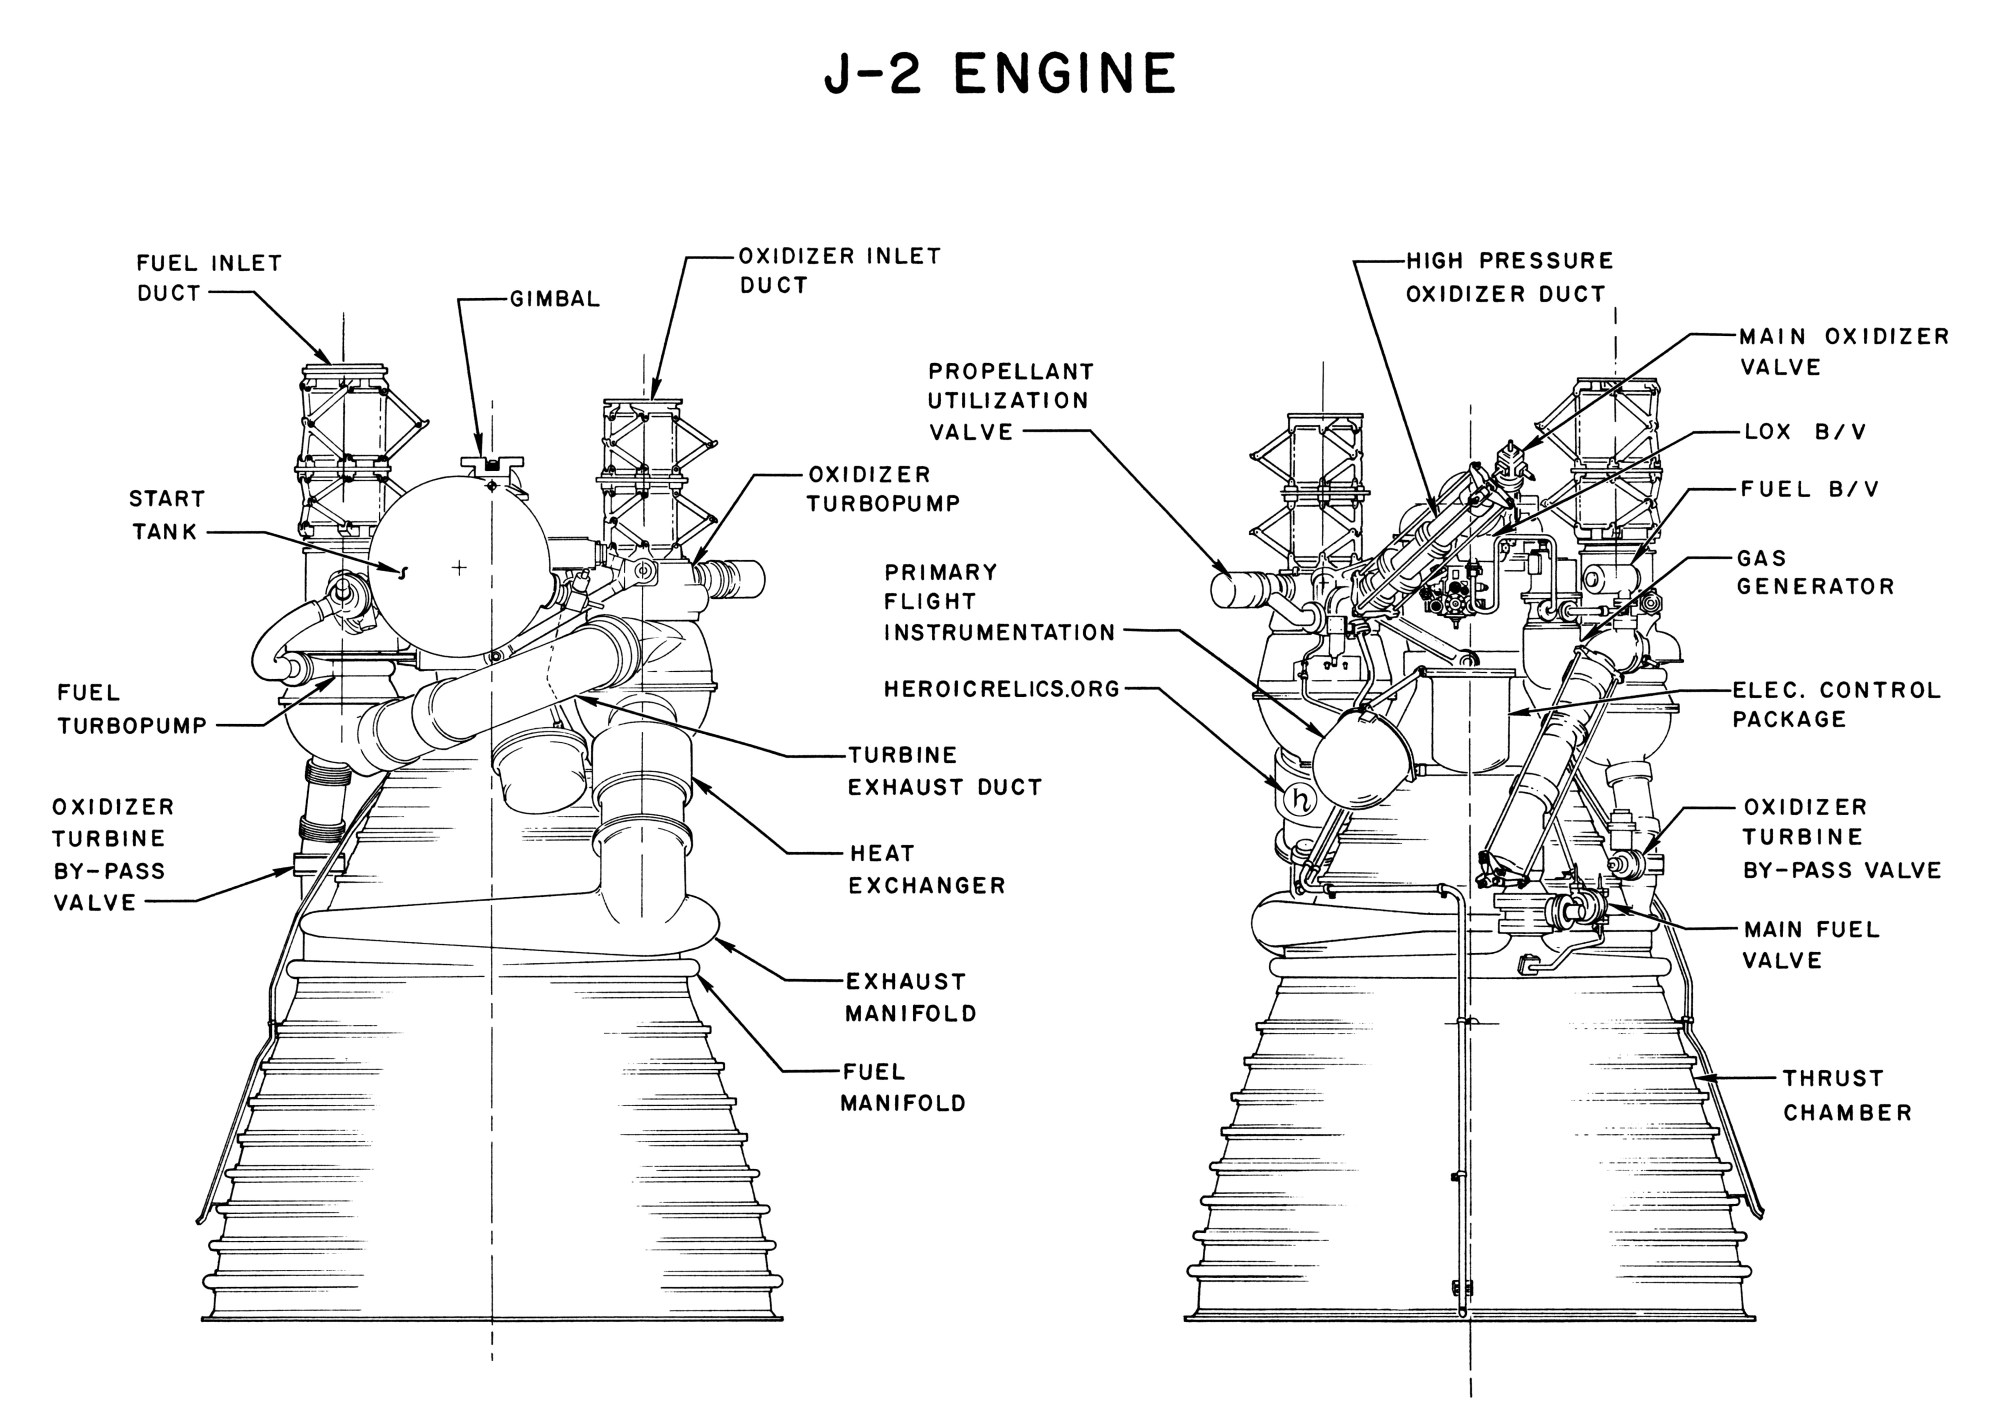 hight resolution of j 2 with callouts2 2 engine diagram 4